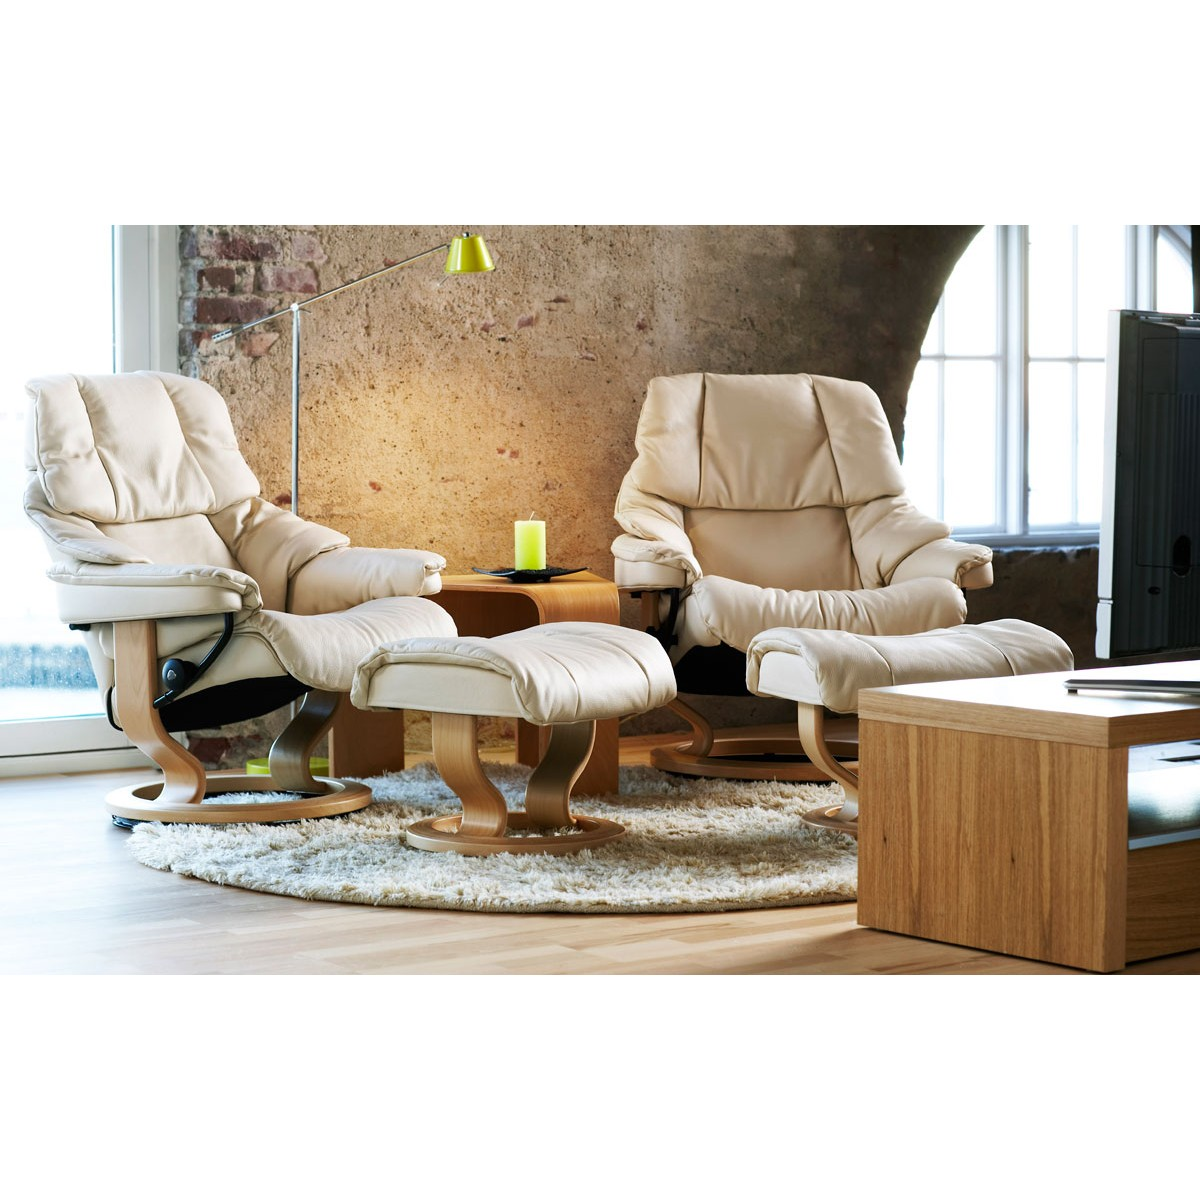 Stressless reno large recliner ottoman from 2 by for Furniture 4 less las vegas